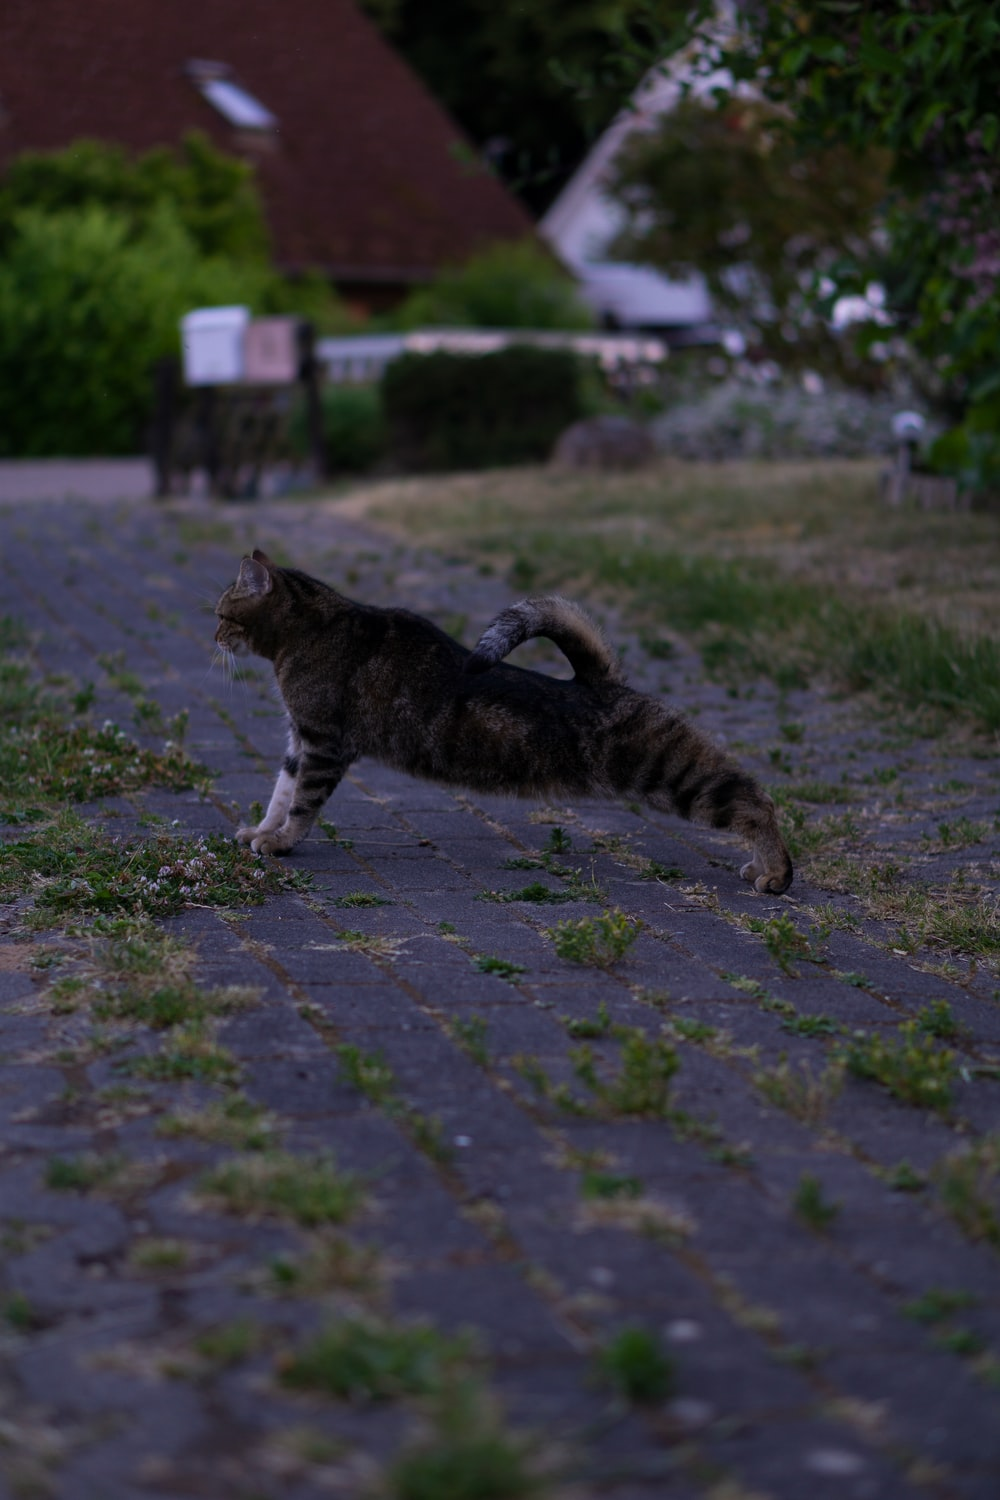 brown tabby cat walking on gray concrete pavement during daytime